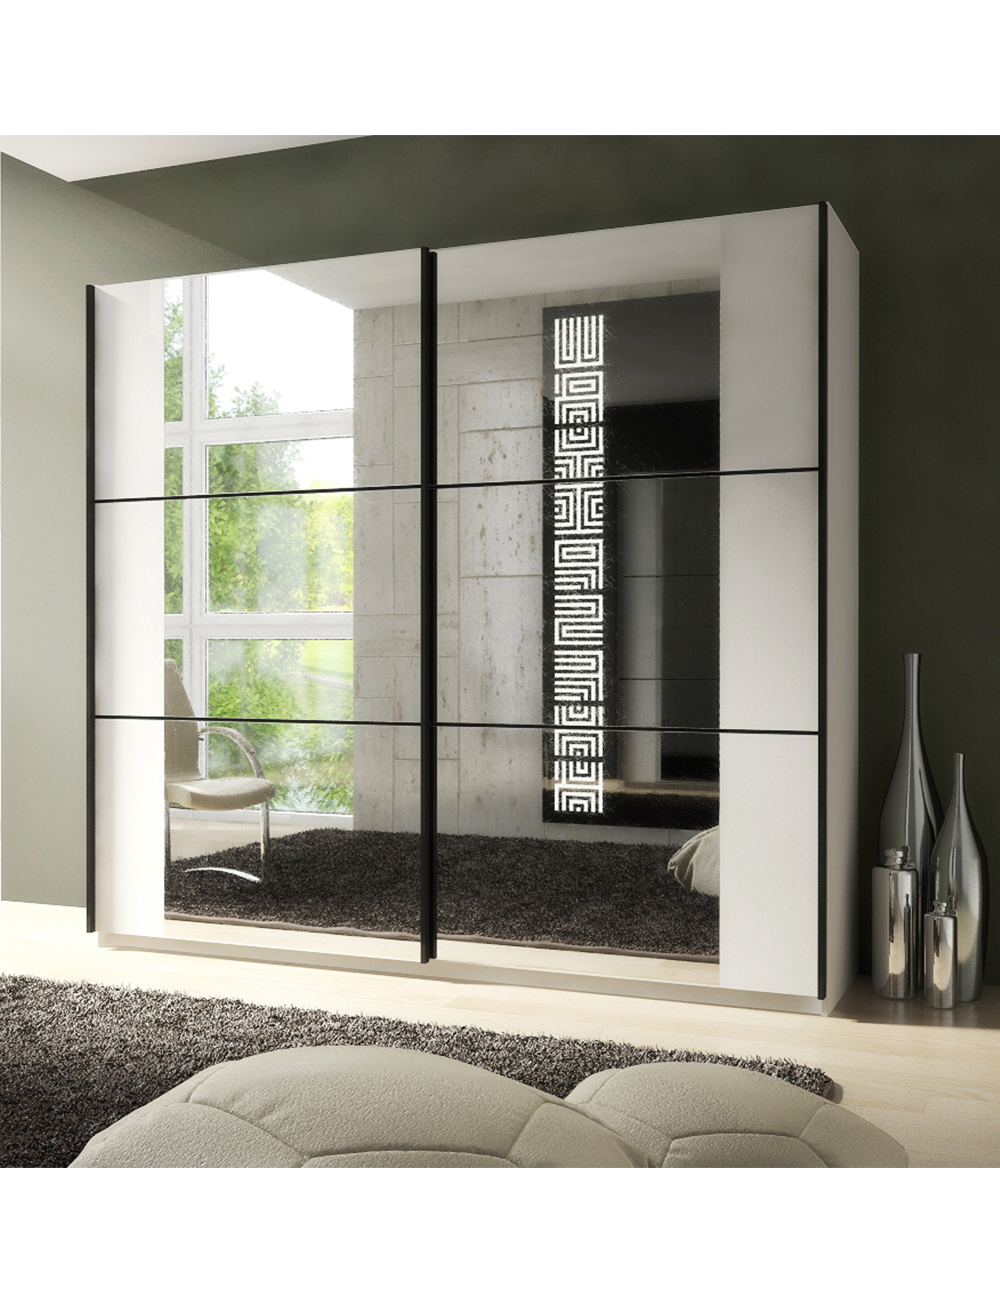 armoire zen avec 2 portes miroir coulissantes. Black Bedroom Furniture Sets. Home Design Ideas